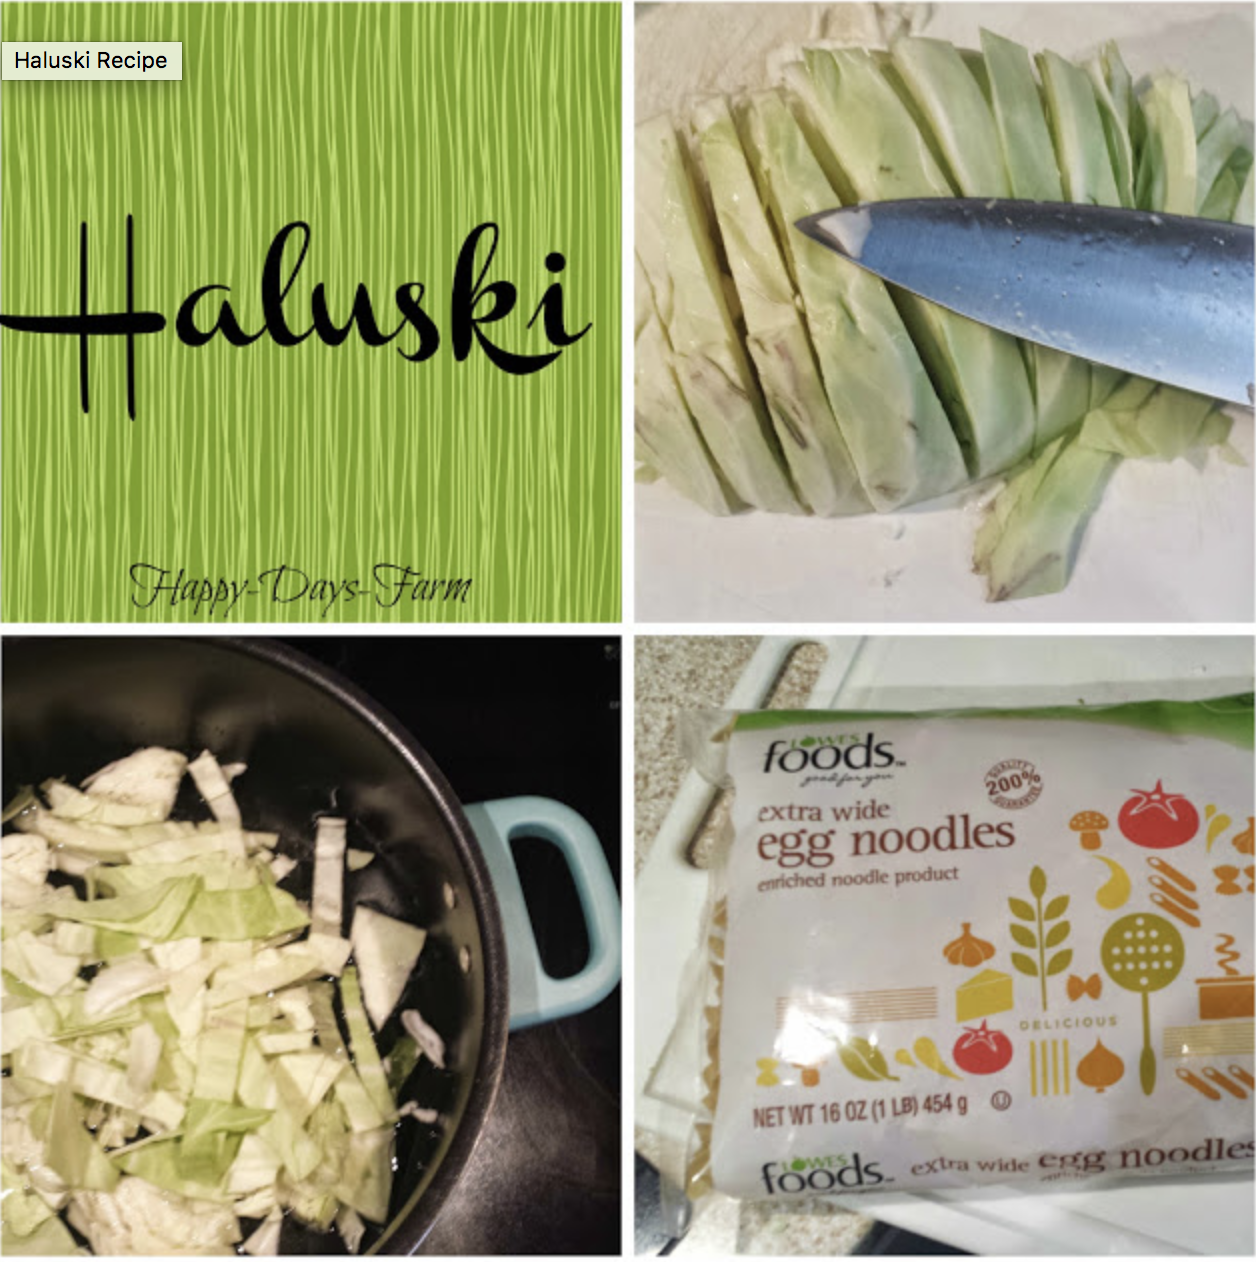 Haluski- An Old European Family Recipe